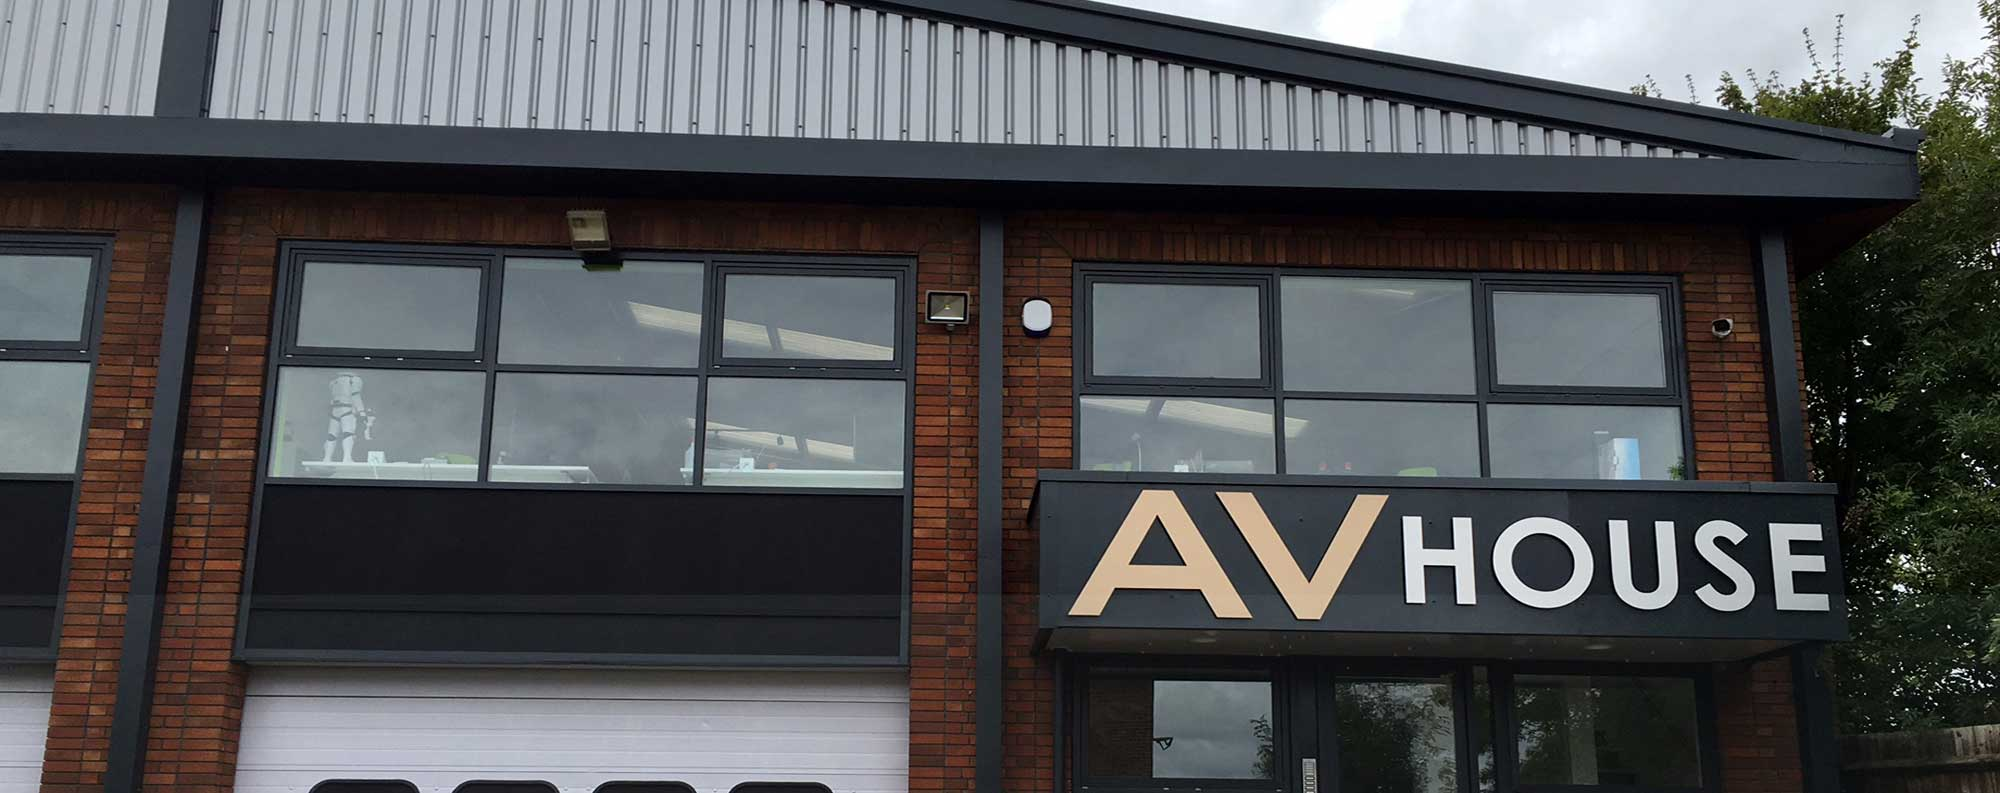 Into AV Distribution - AV House